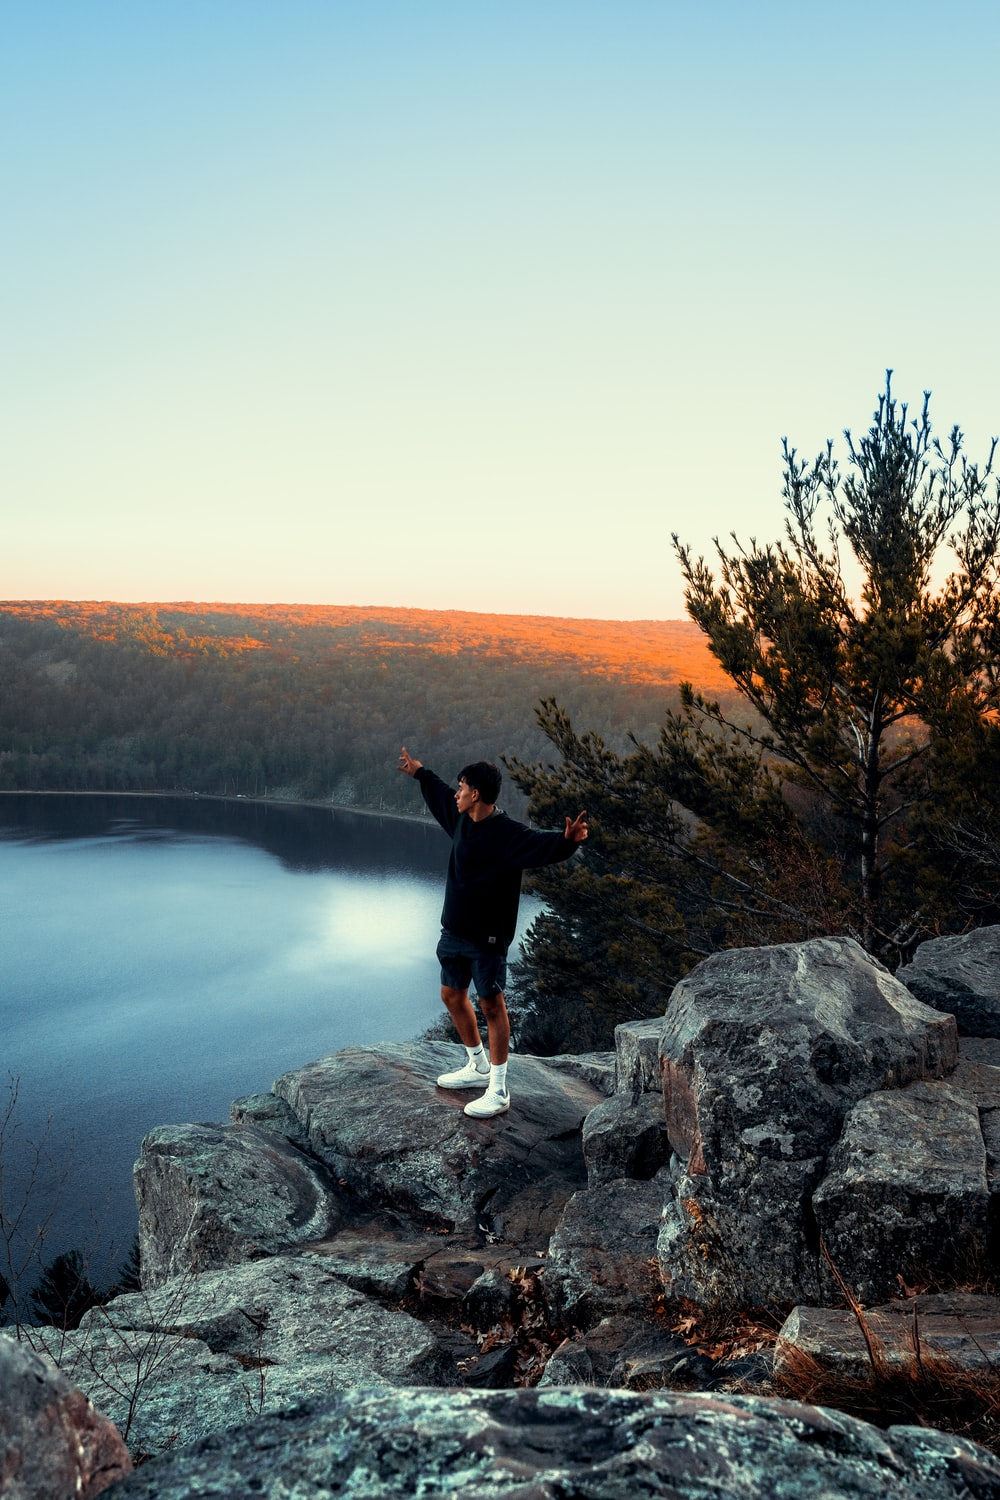 man in black jacket standing on gray rock near body of water during daytime